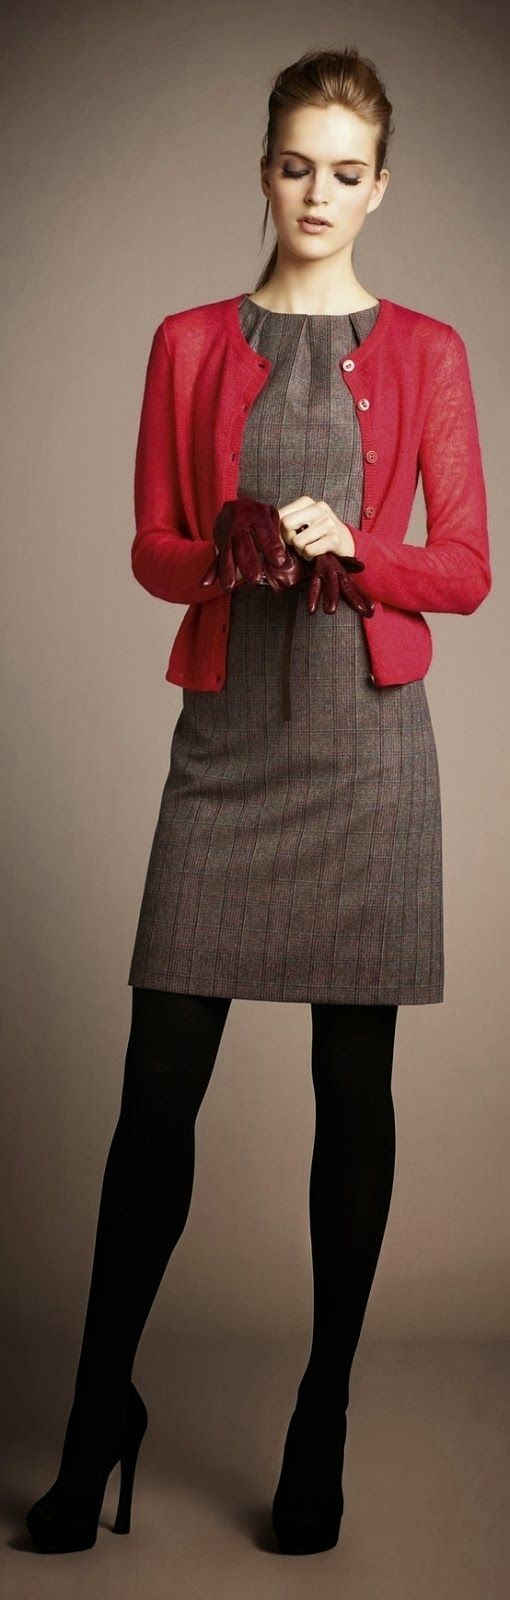 Fall outfit with red cardigan and long booties